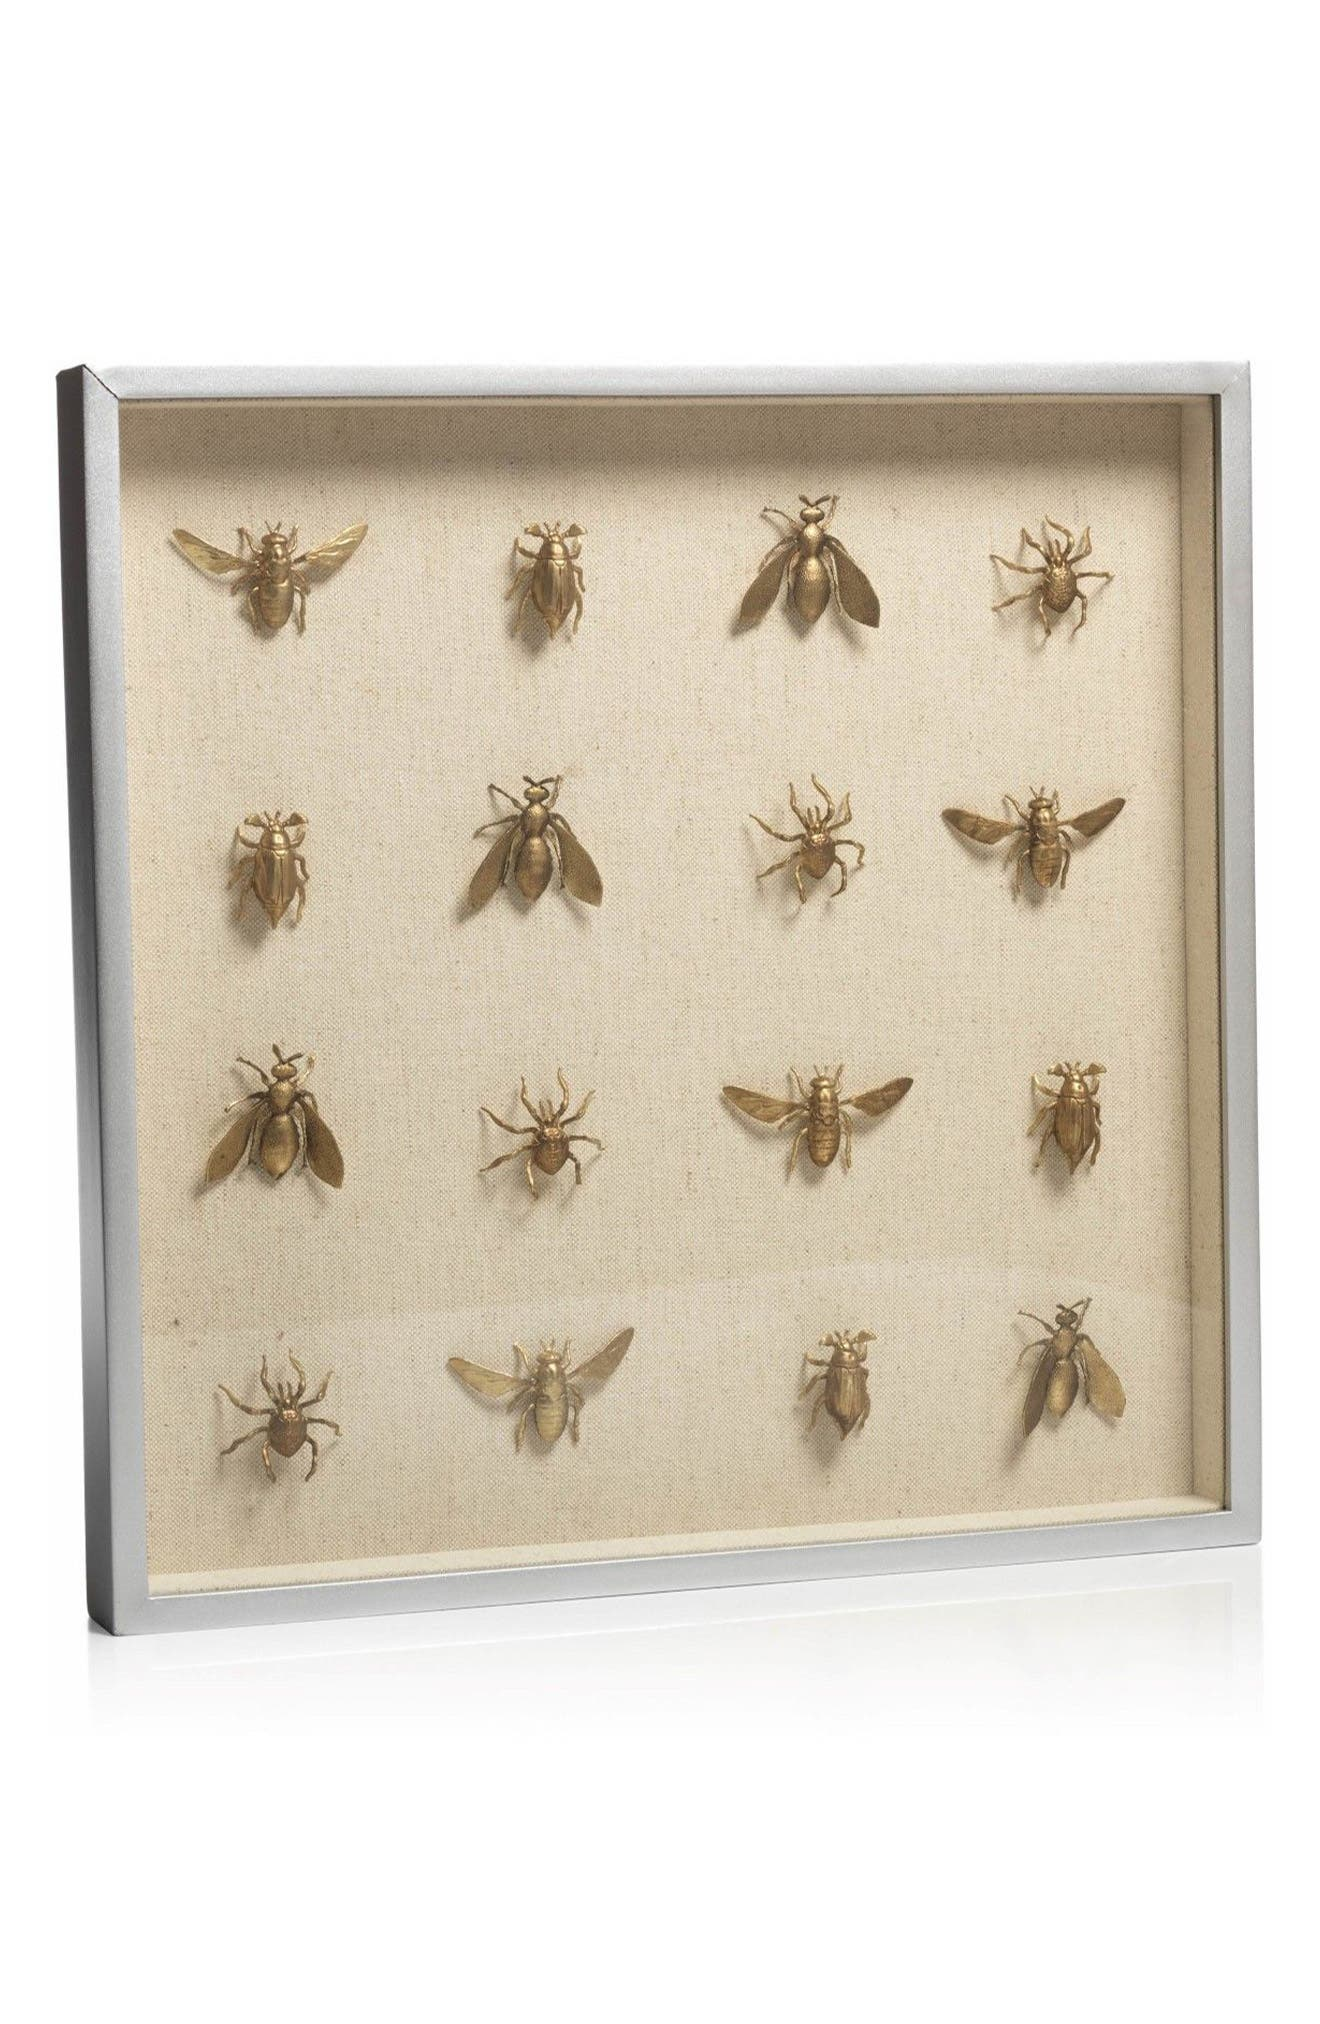 Insect Shadow Box Art,                         Main,                         color, Off-White/ Gold/ Beige